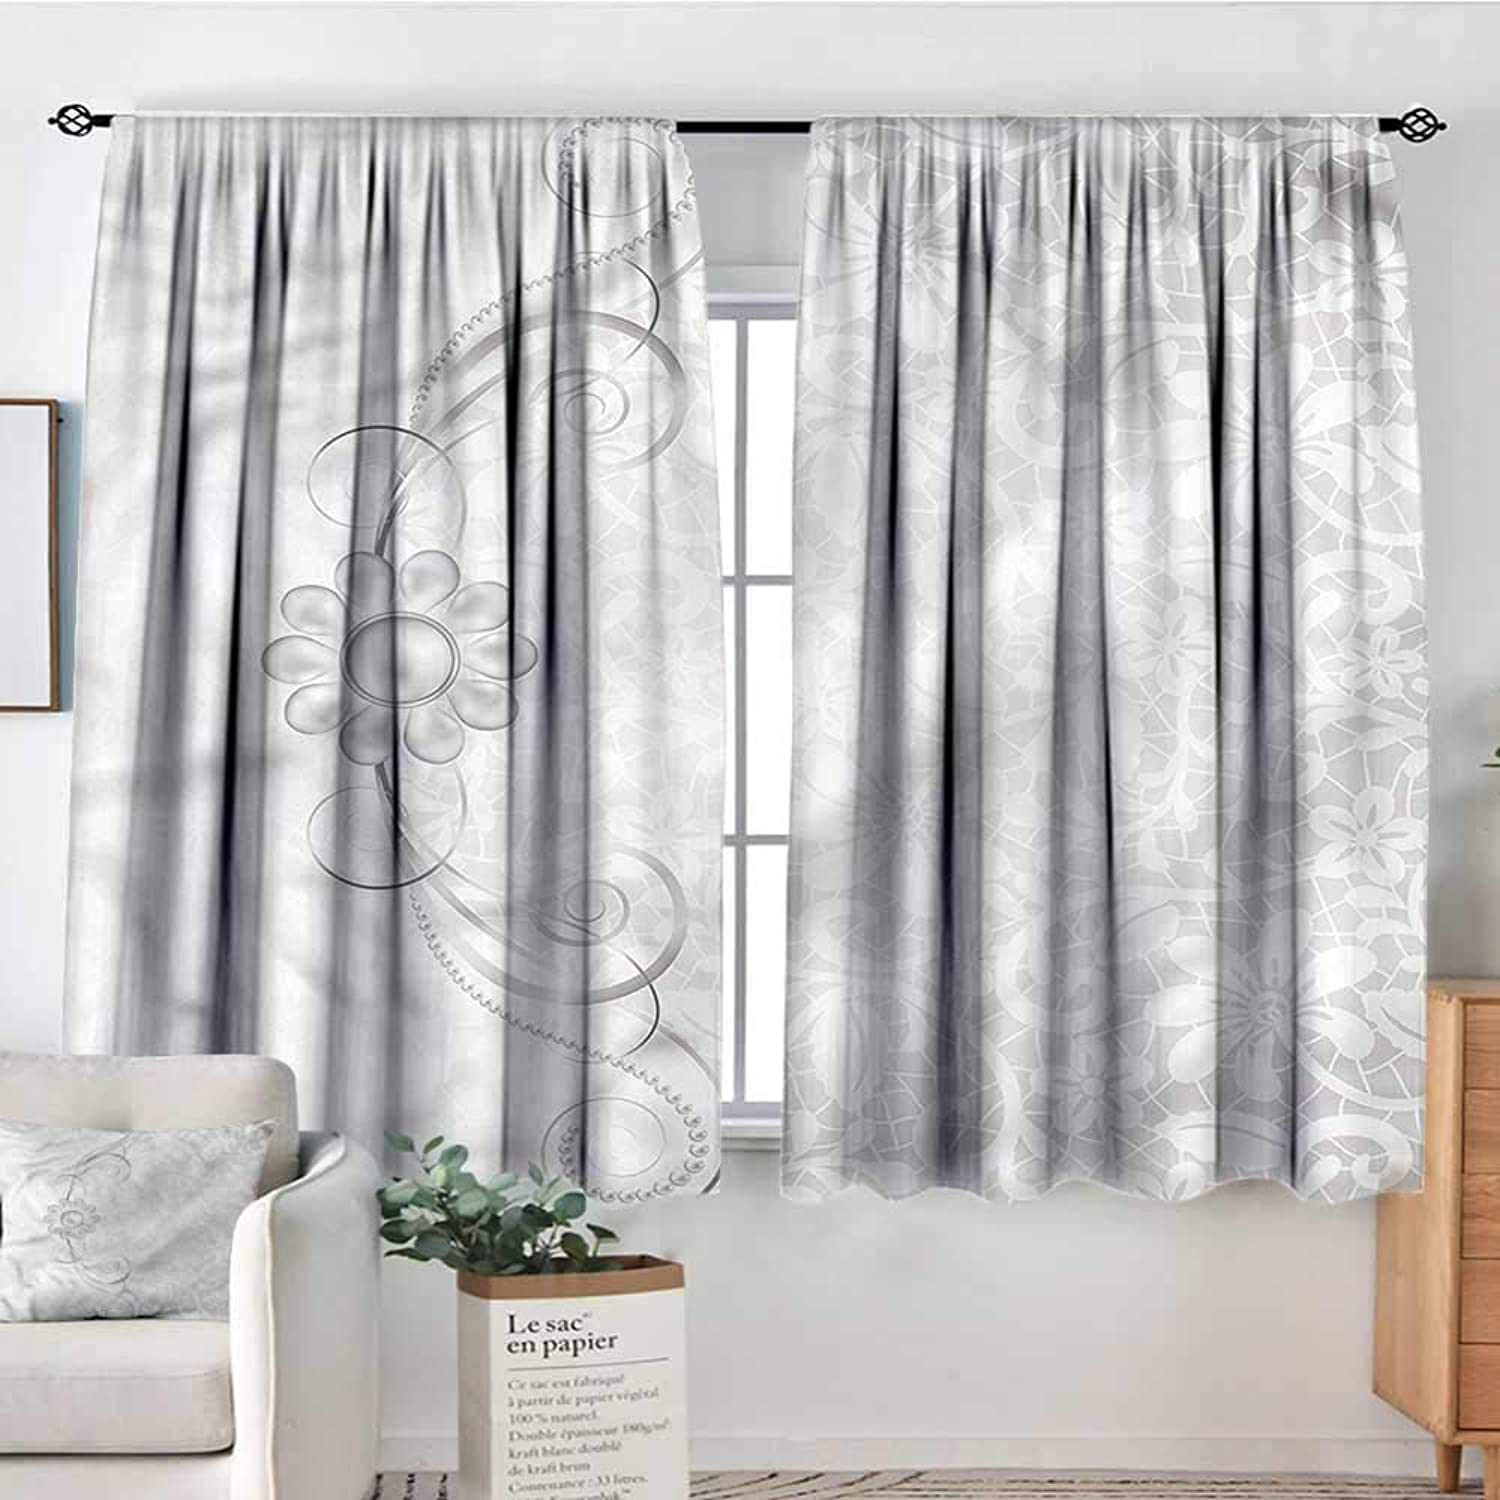 Sanring Grey,Rod Curtains Bridal Flourish Motifs 52 x63  Backout Curtains for Kids Iving Room